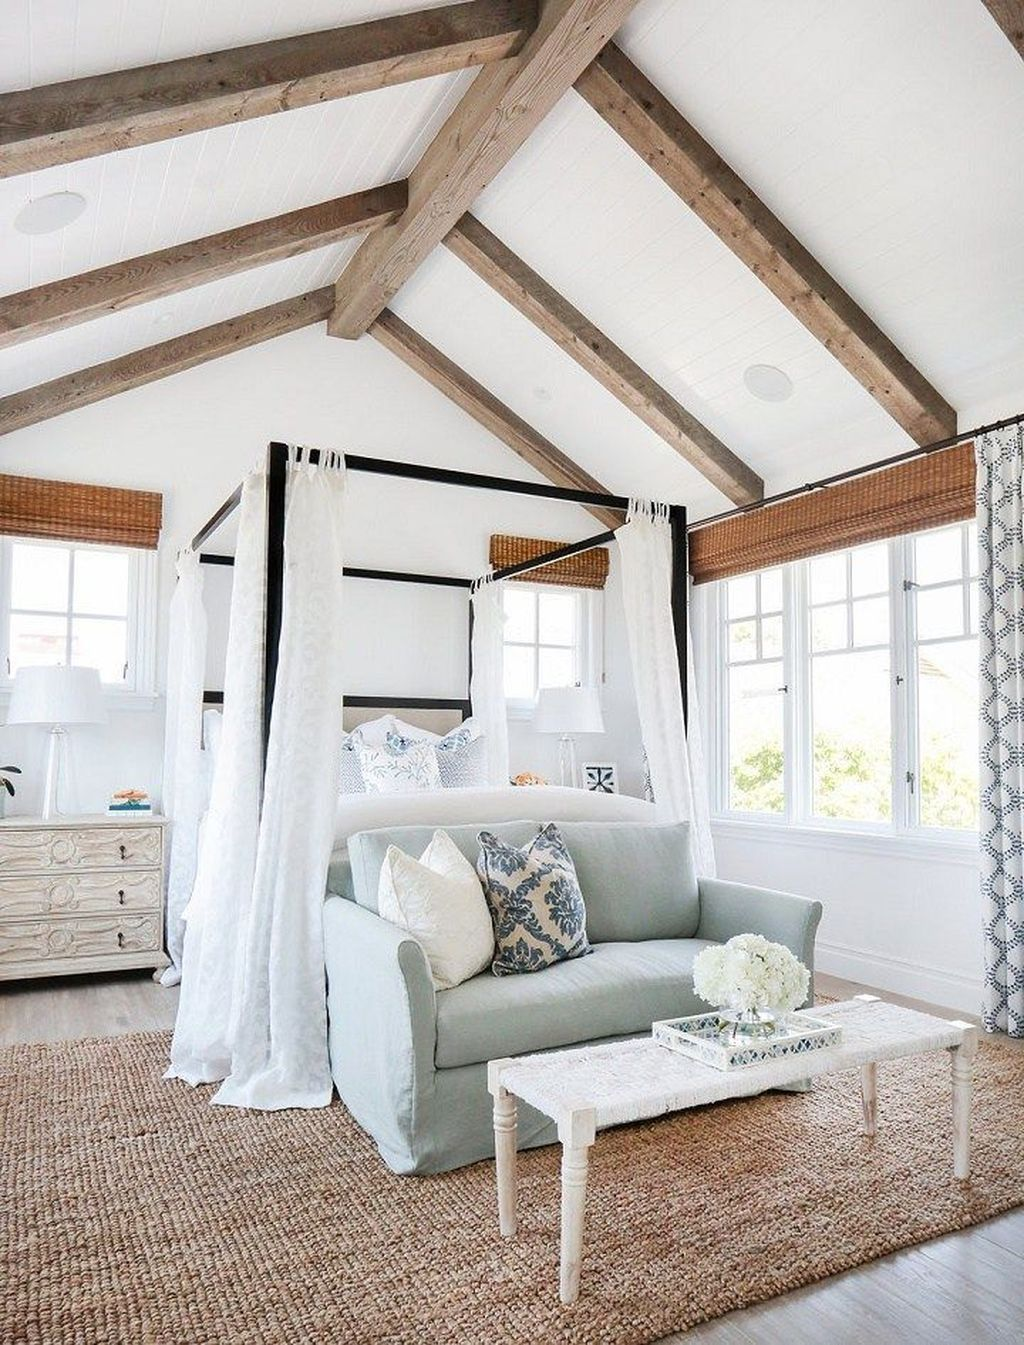 Master bedroom decorating ideas 2018  Awesome  Modern Coastal Master Bedroom Decorating Ideas More at